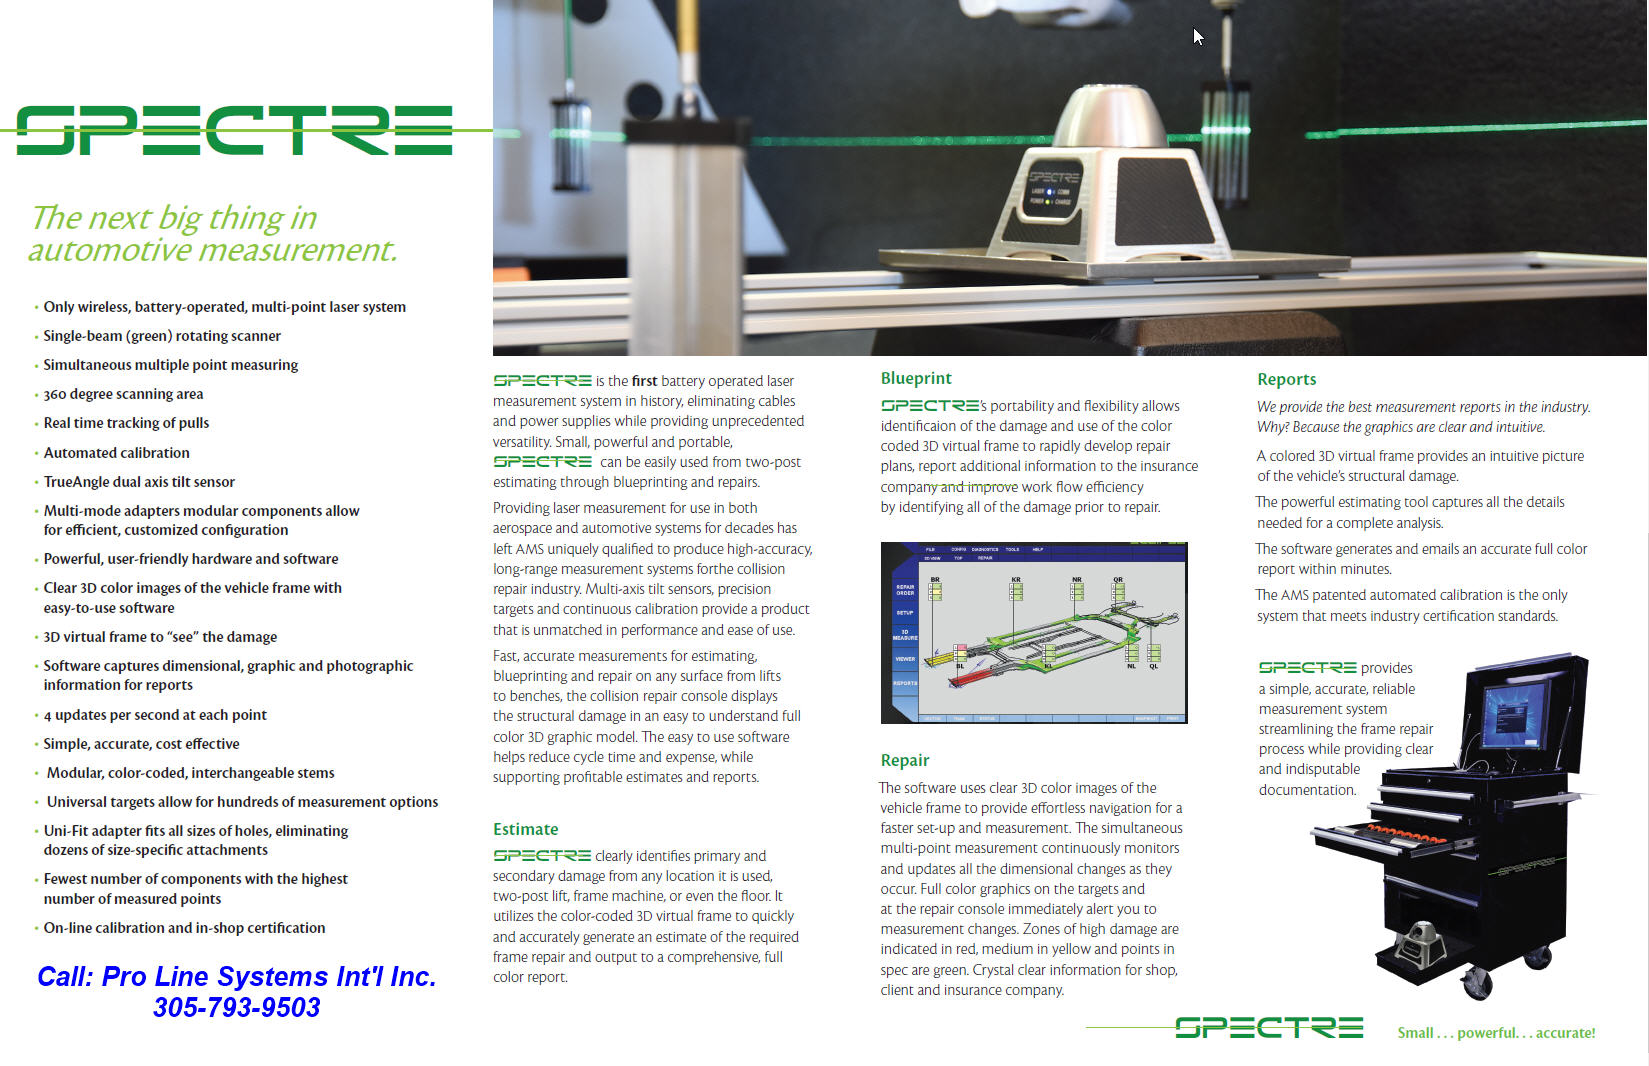 Spectre Laser Electronic Measuring System - Pro Line Systems